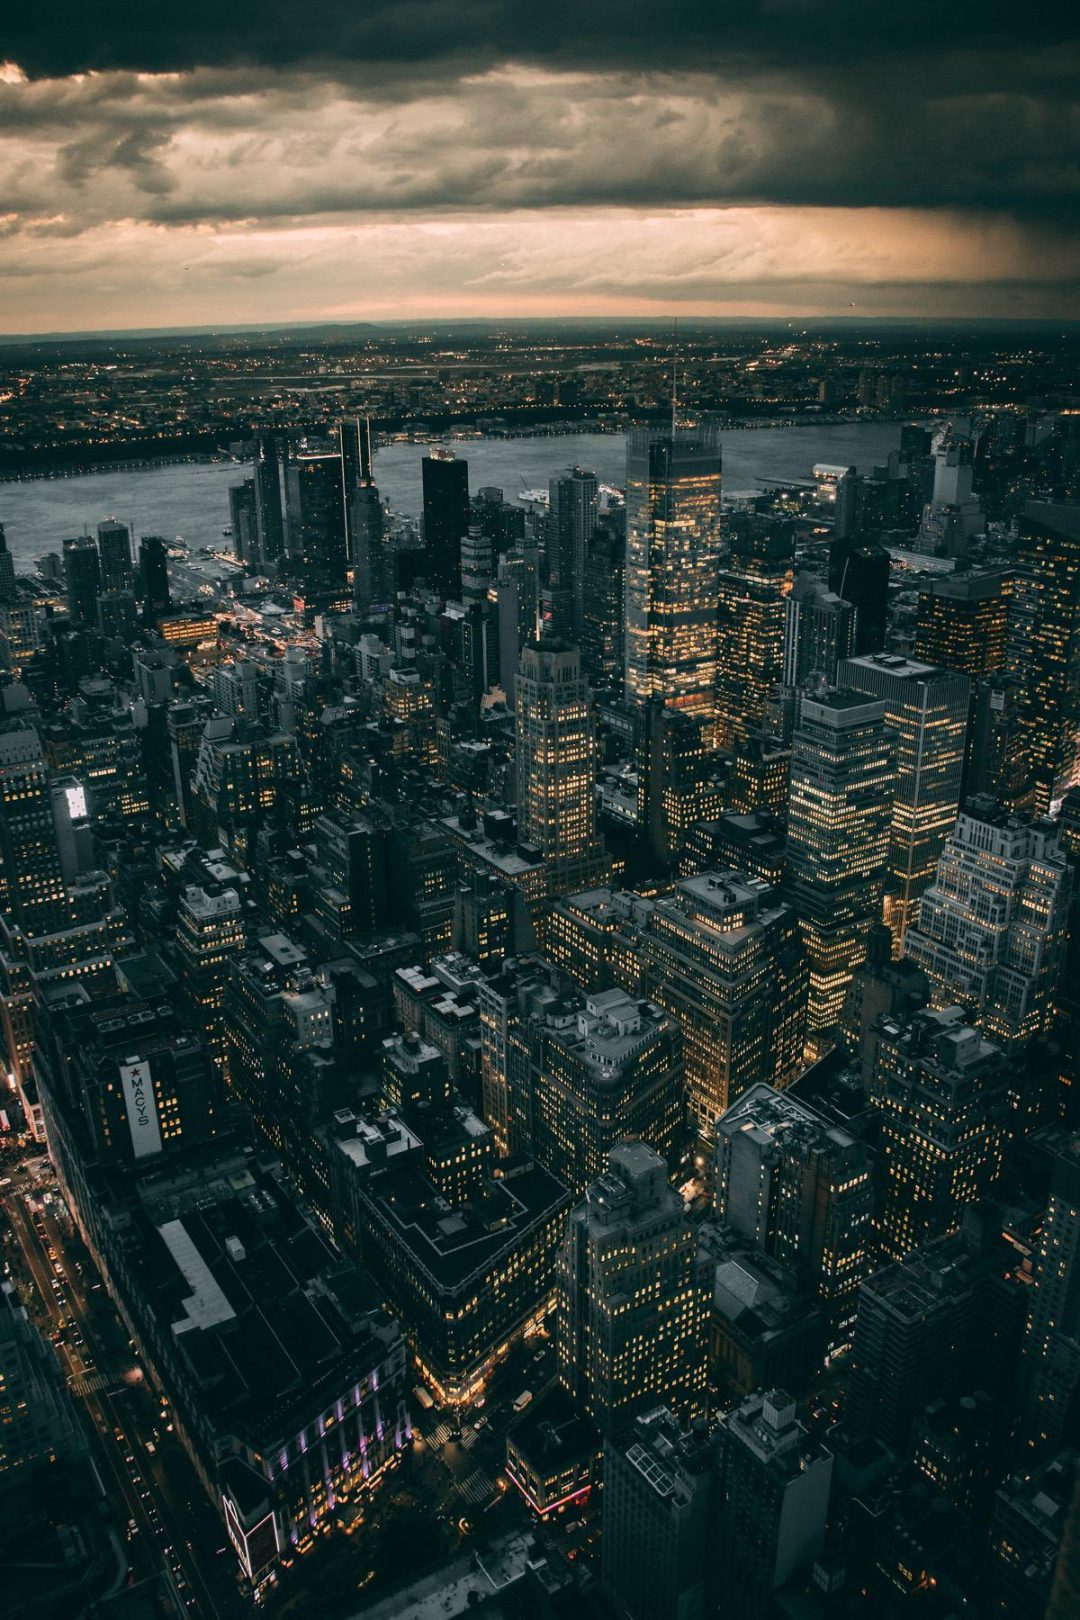 Night time NYC from above